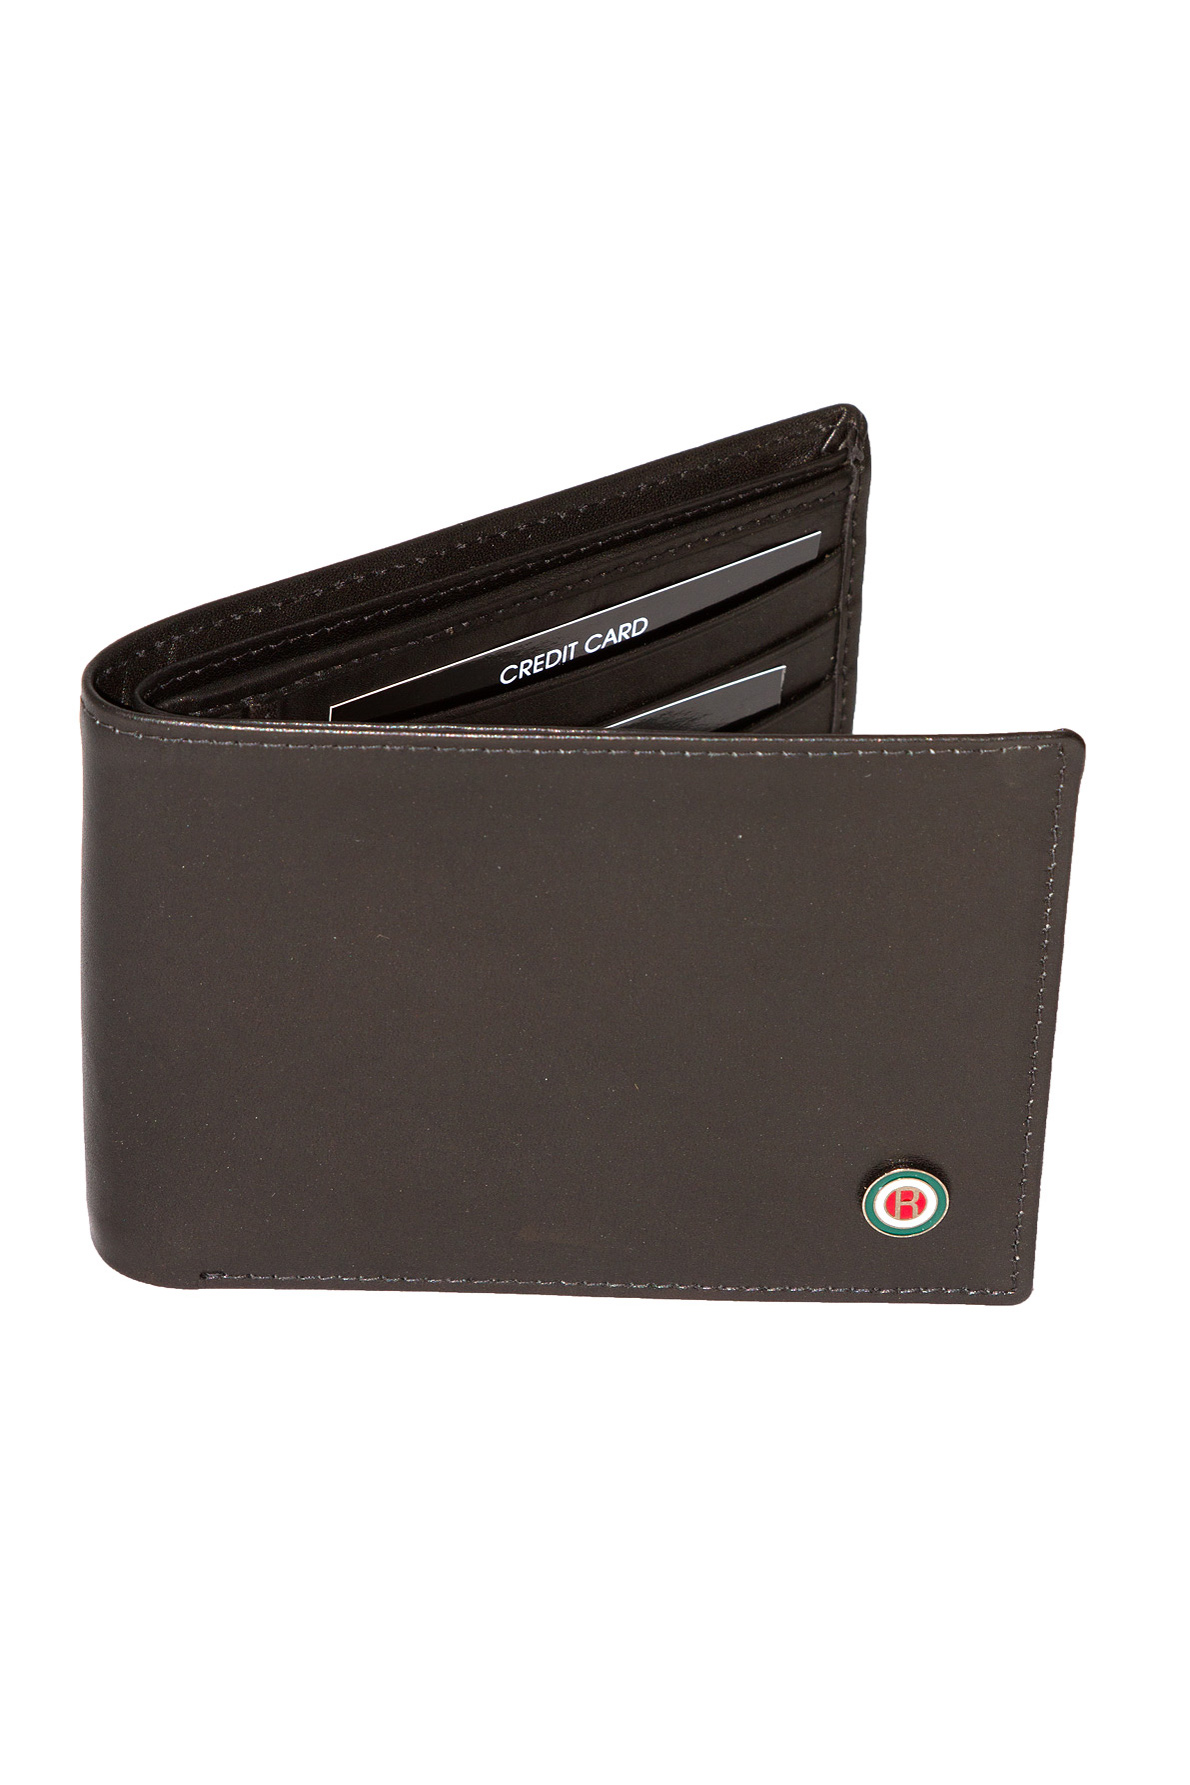 Overstock uses cookies to ensure you get the best experience on our site. If you continue on our site, you consent to the use of such cookies. Learn more. OK Wallets. Clothing & Shoes / Visconti Heritage Ladies Multi Soft Leather Card Holder Wallet and Purse.